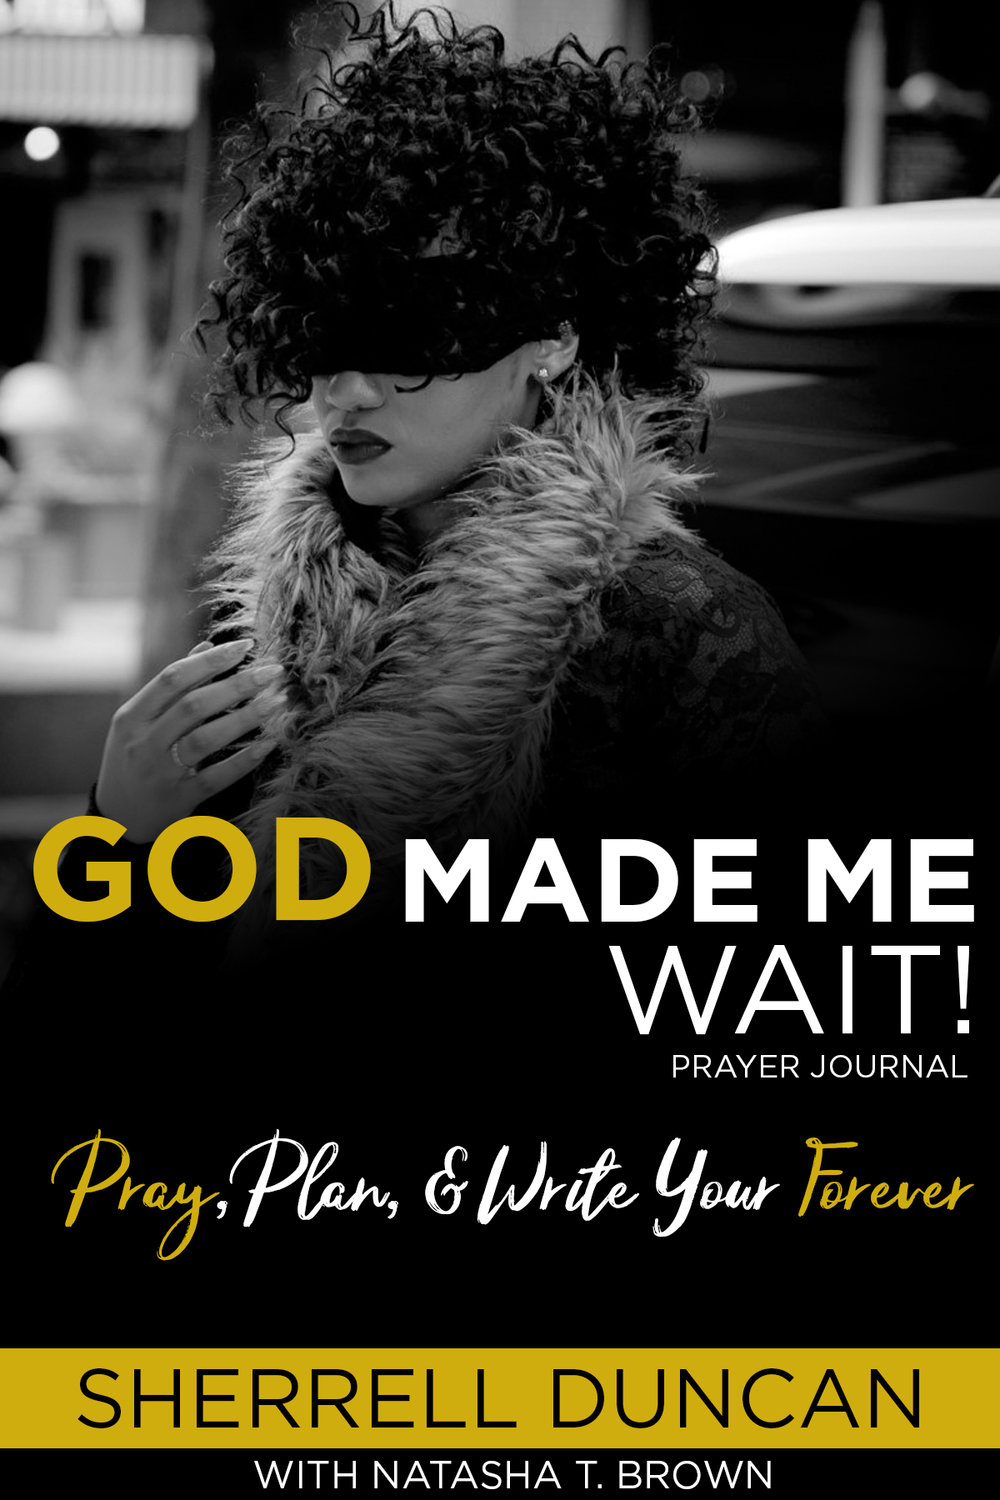 God Made Me Wait! by Sherrell Duncan with Natasha T. Brown identifies and confronts the toxic realities that hold women back. This transparent book of self reflection will empower you toward a journey of purging and obedience to God through prayer, planning, writing and declaring YOUR forever. Through intimate prayers and moments with God, the authors demonstrate how women can strengthen their faith, solidify their future and break free from the strongholds of tragedy and sin. God Made Me Wait includes a 14-day devotional and journal.